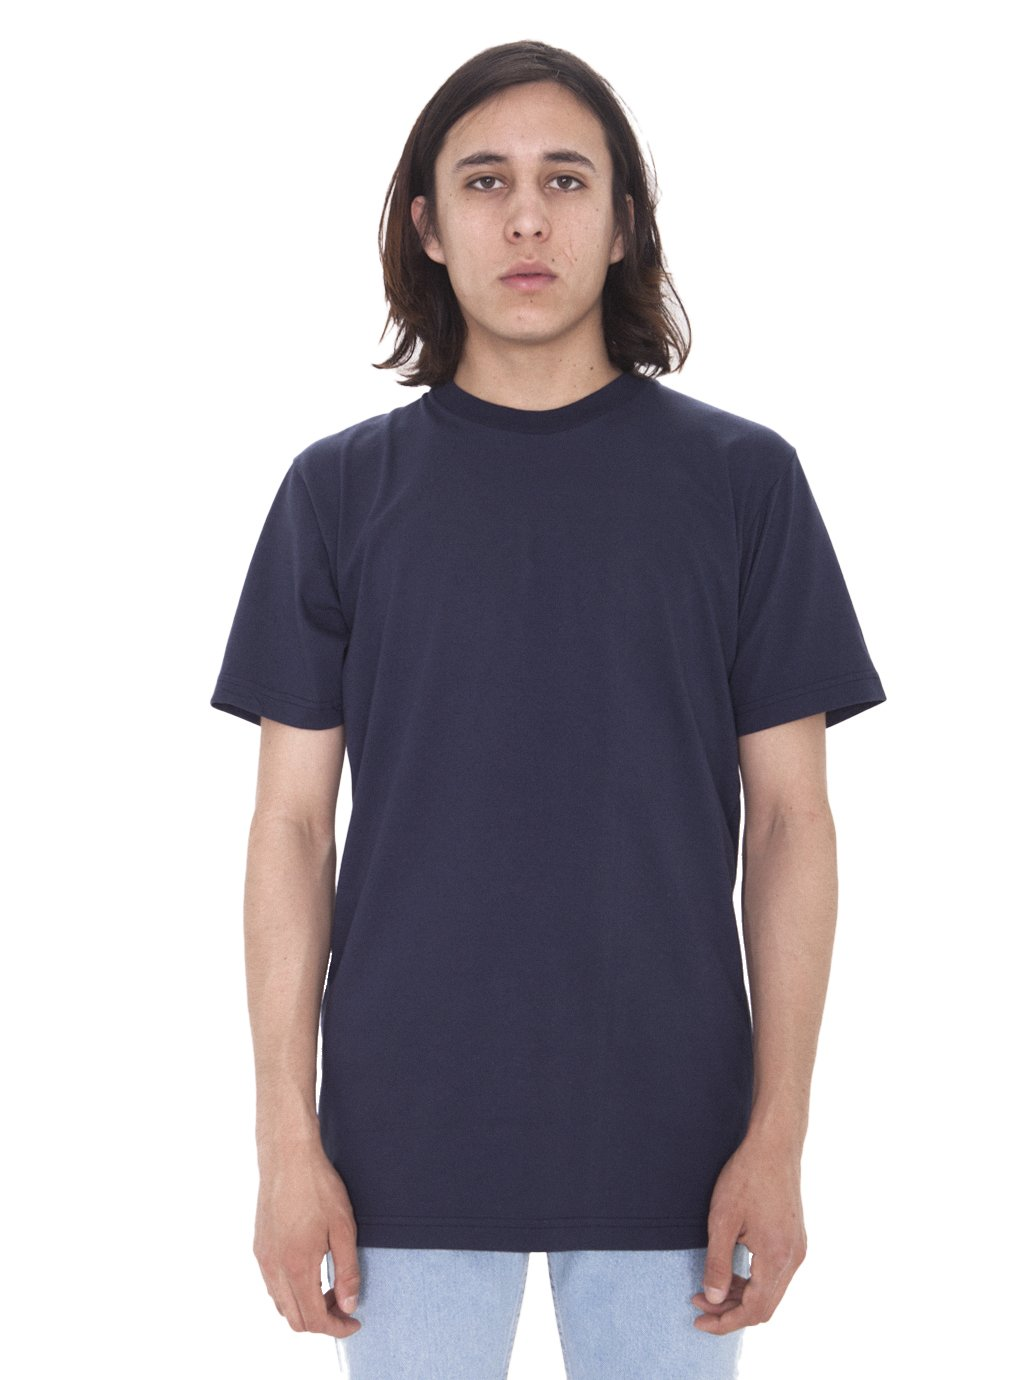 American Apparel Men's Fine Jersey Short Sleeve Tall Tee, Navy, Large